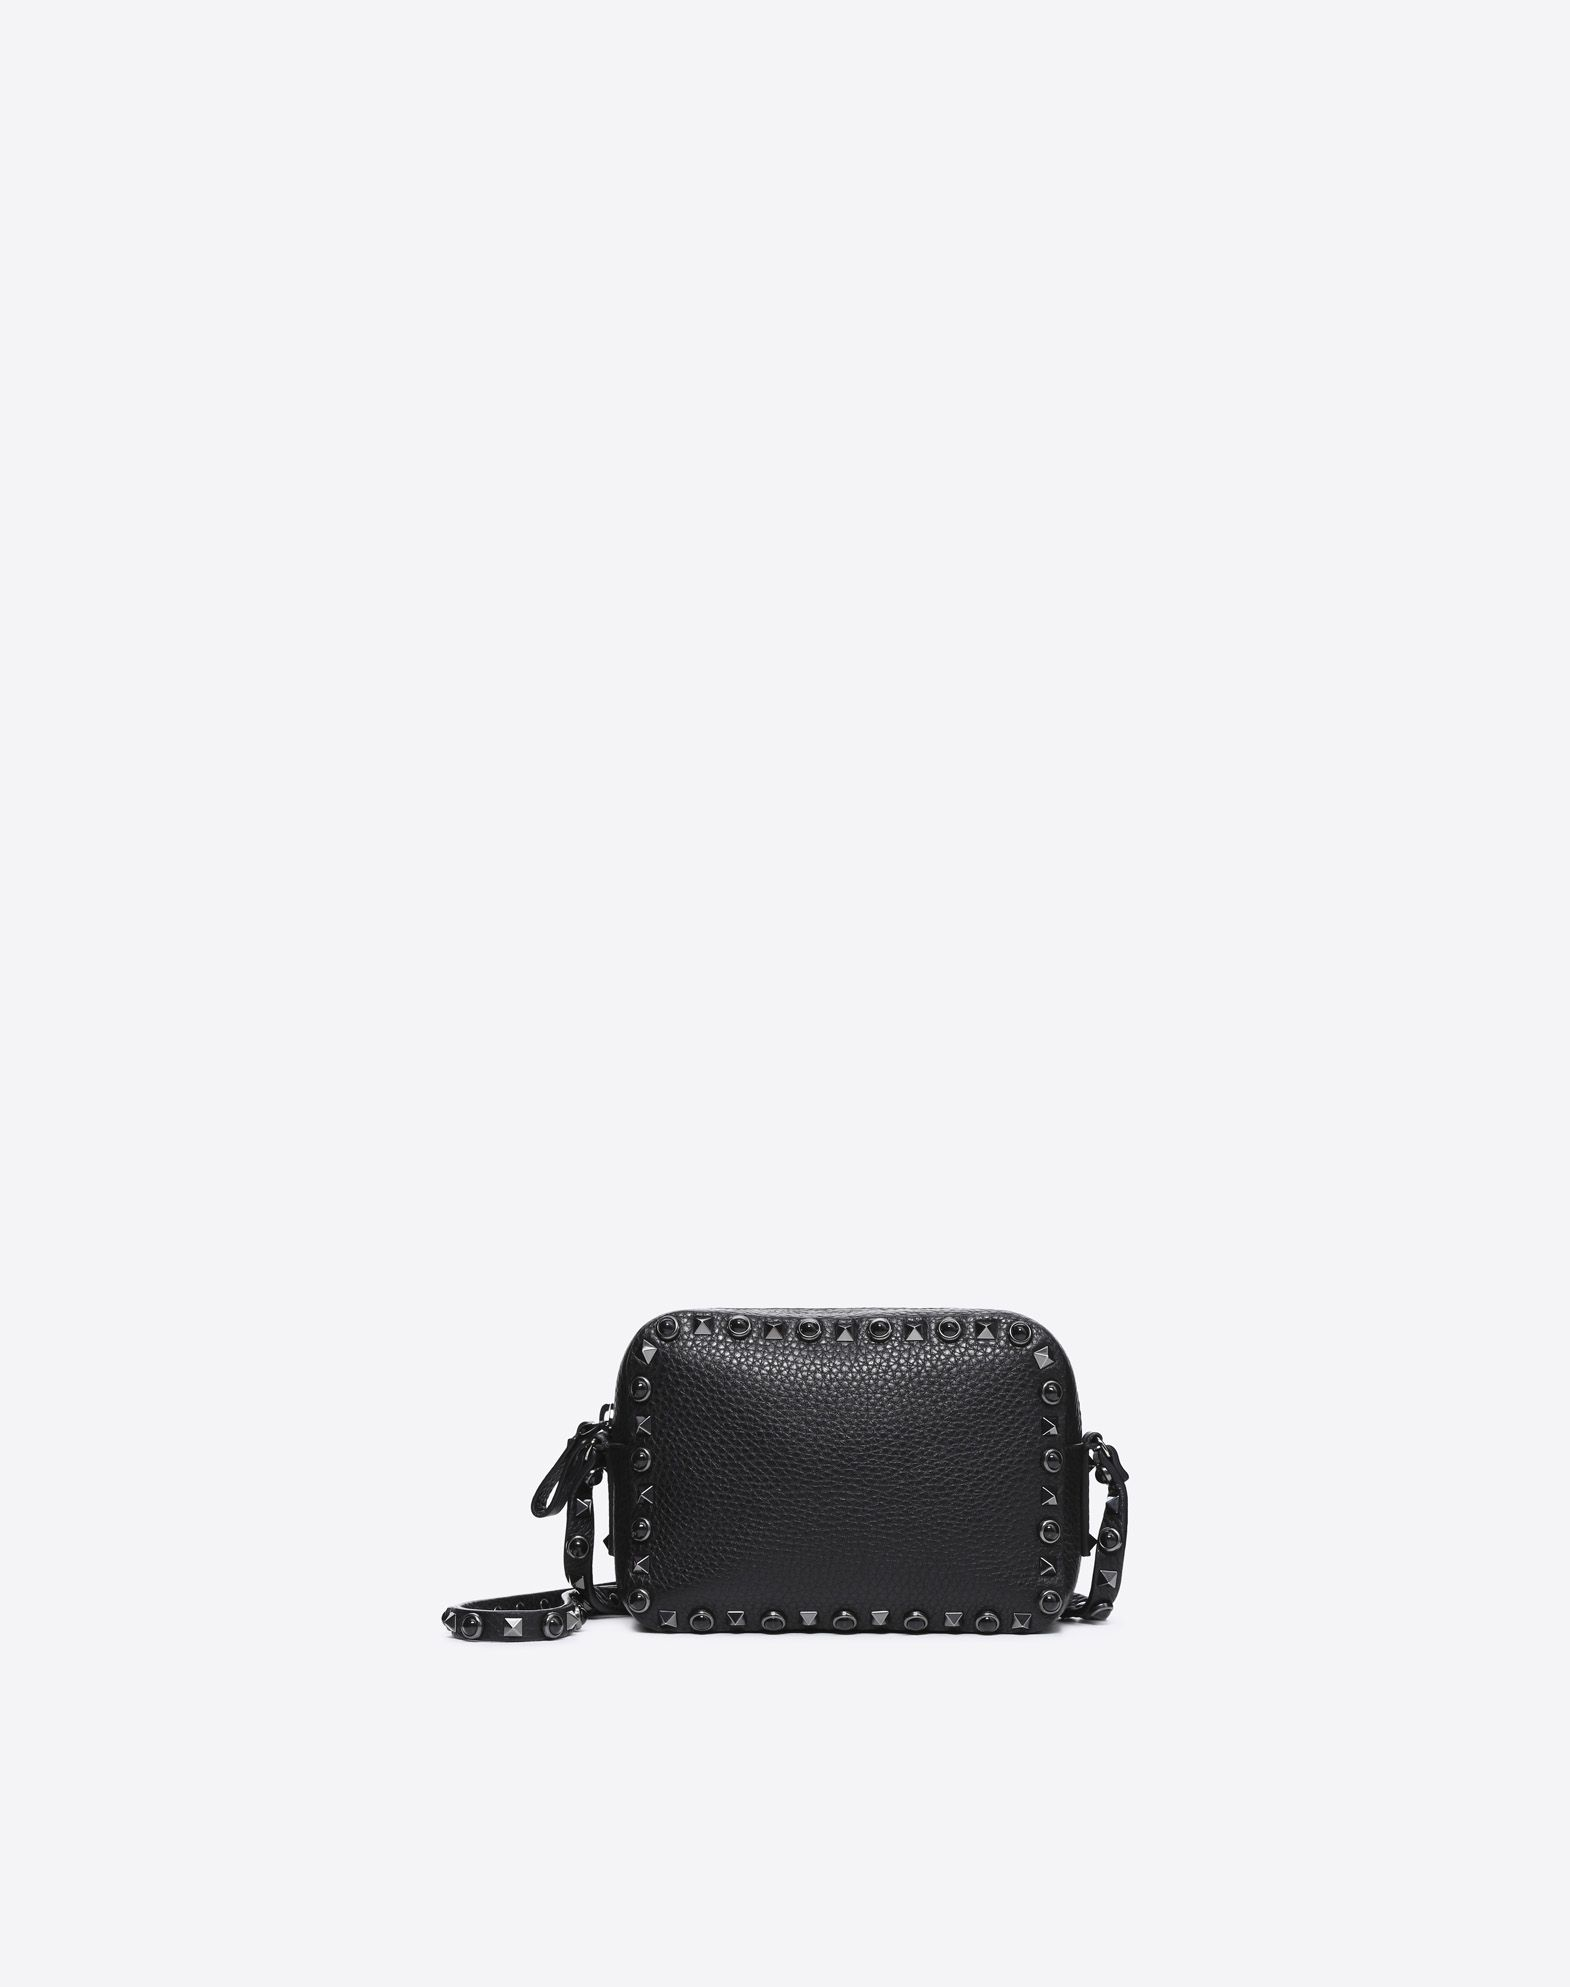 VALENTINO GARAVANI Rockstud Rolling Noir Cross Body Bag CROSS BODY BAG D f